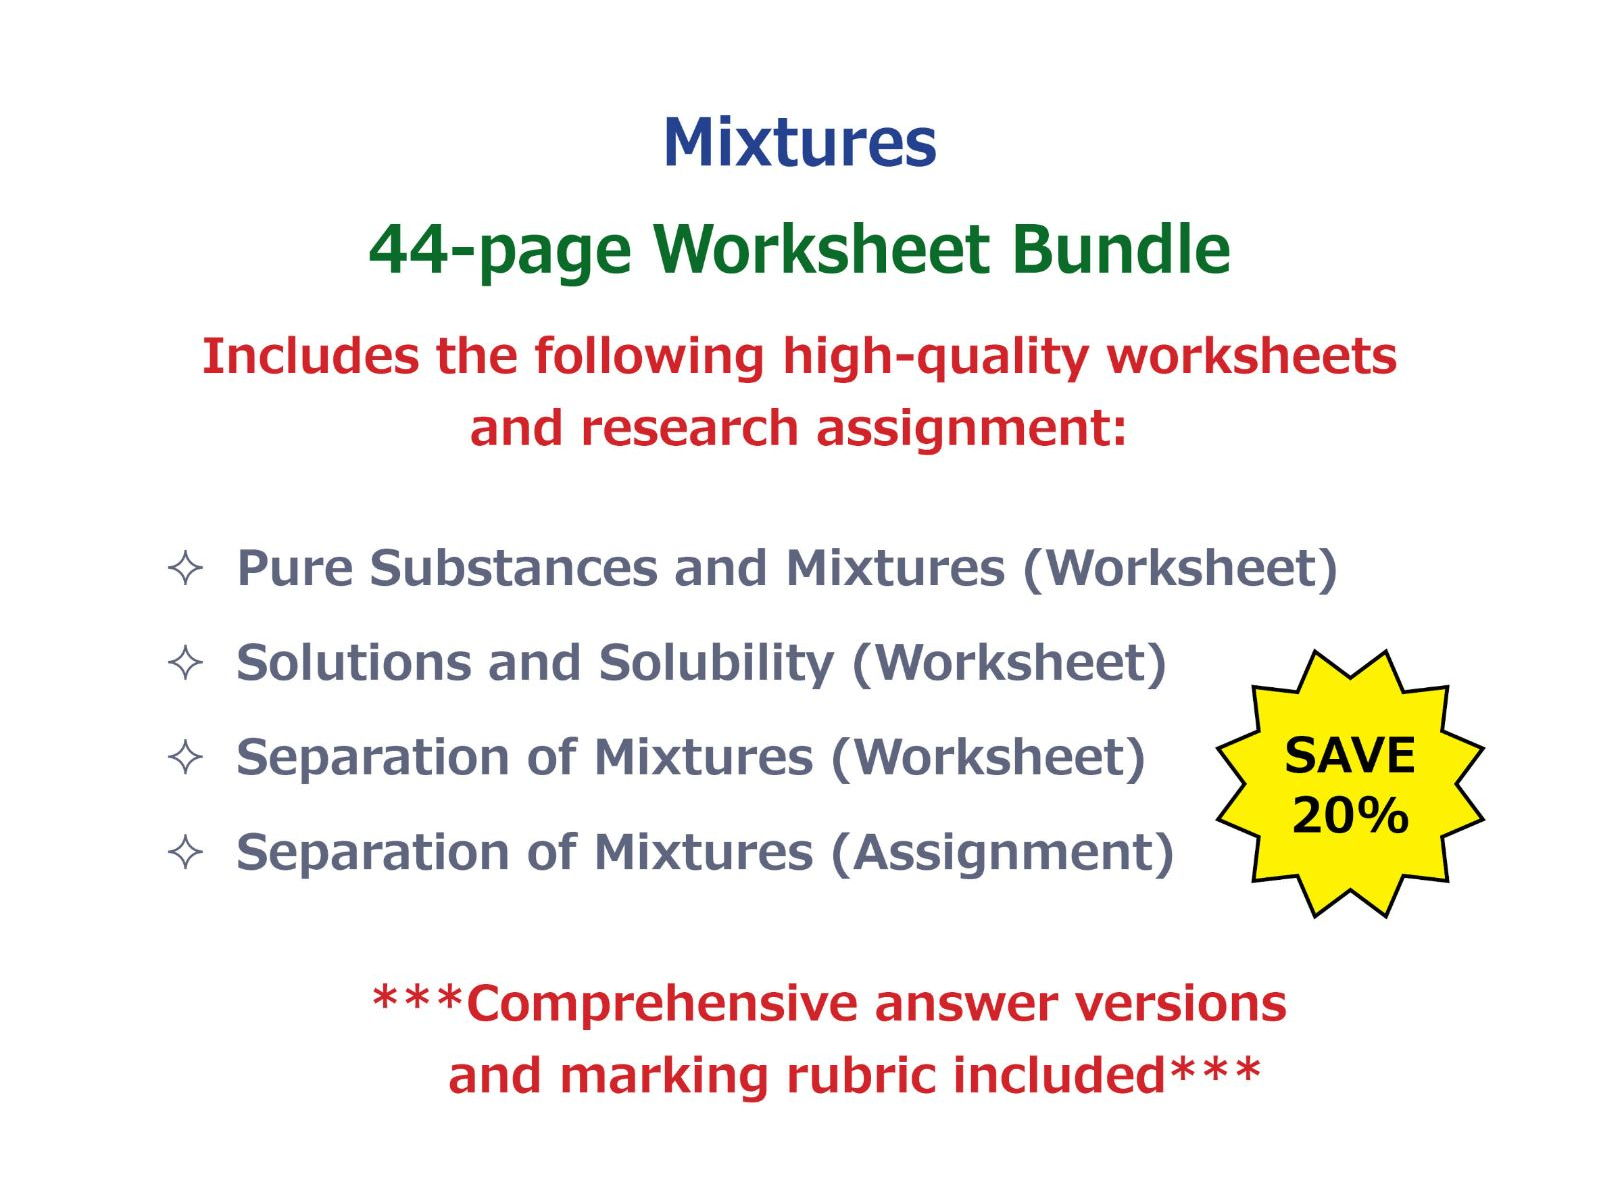 Worksheets Separating Mixtures Worksheet separation of mixtures research assignment by goodscienceworksheets teaching resources tes